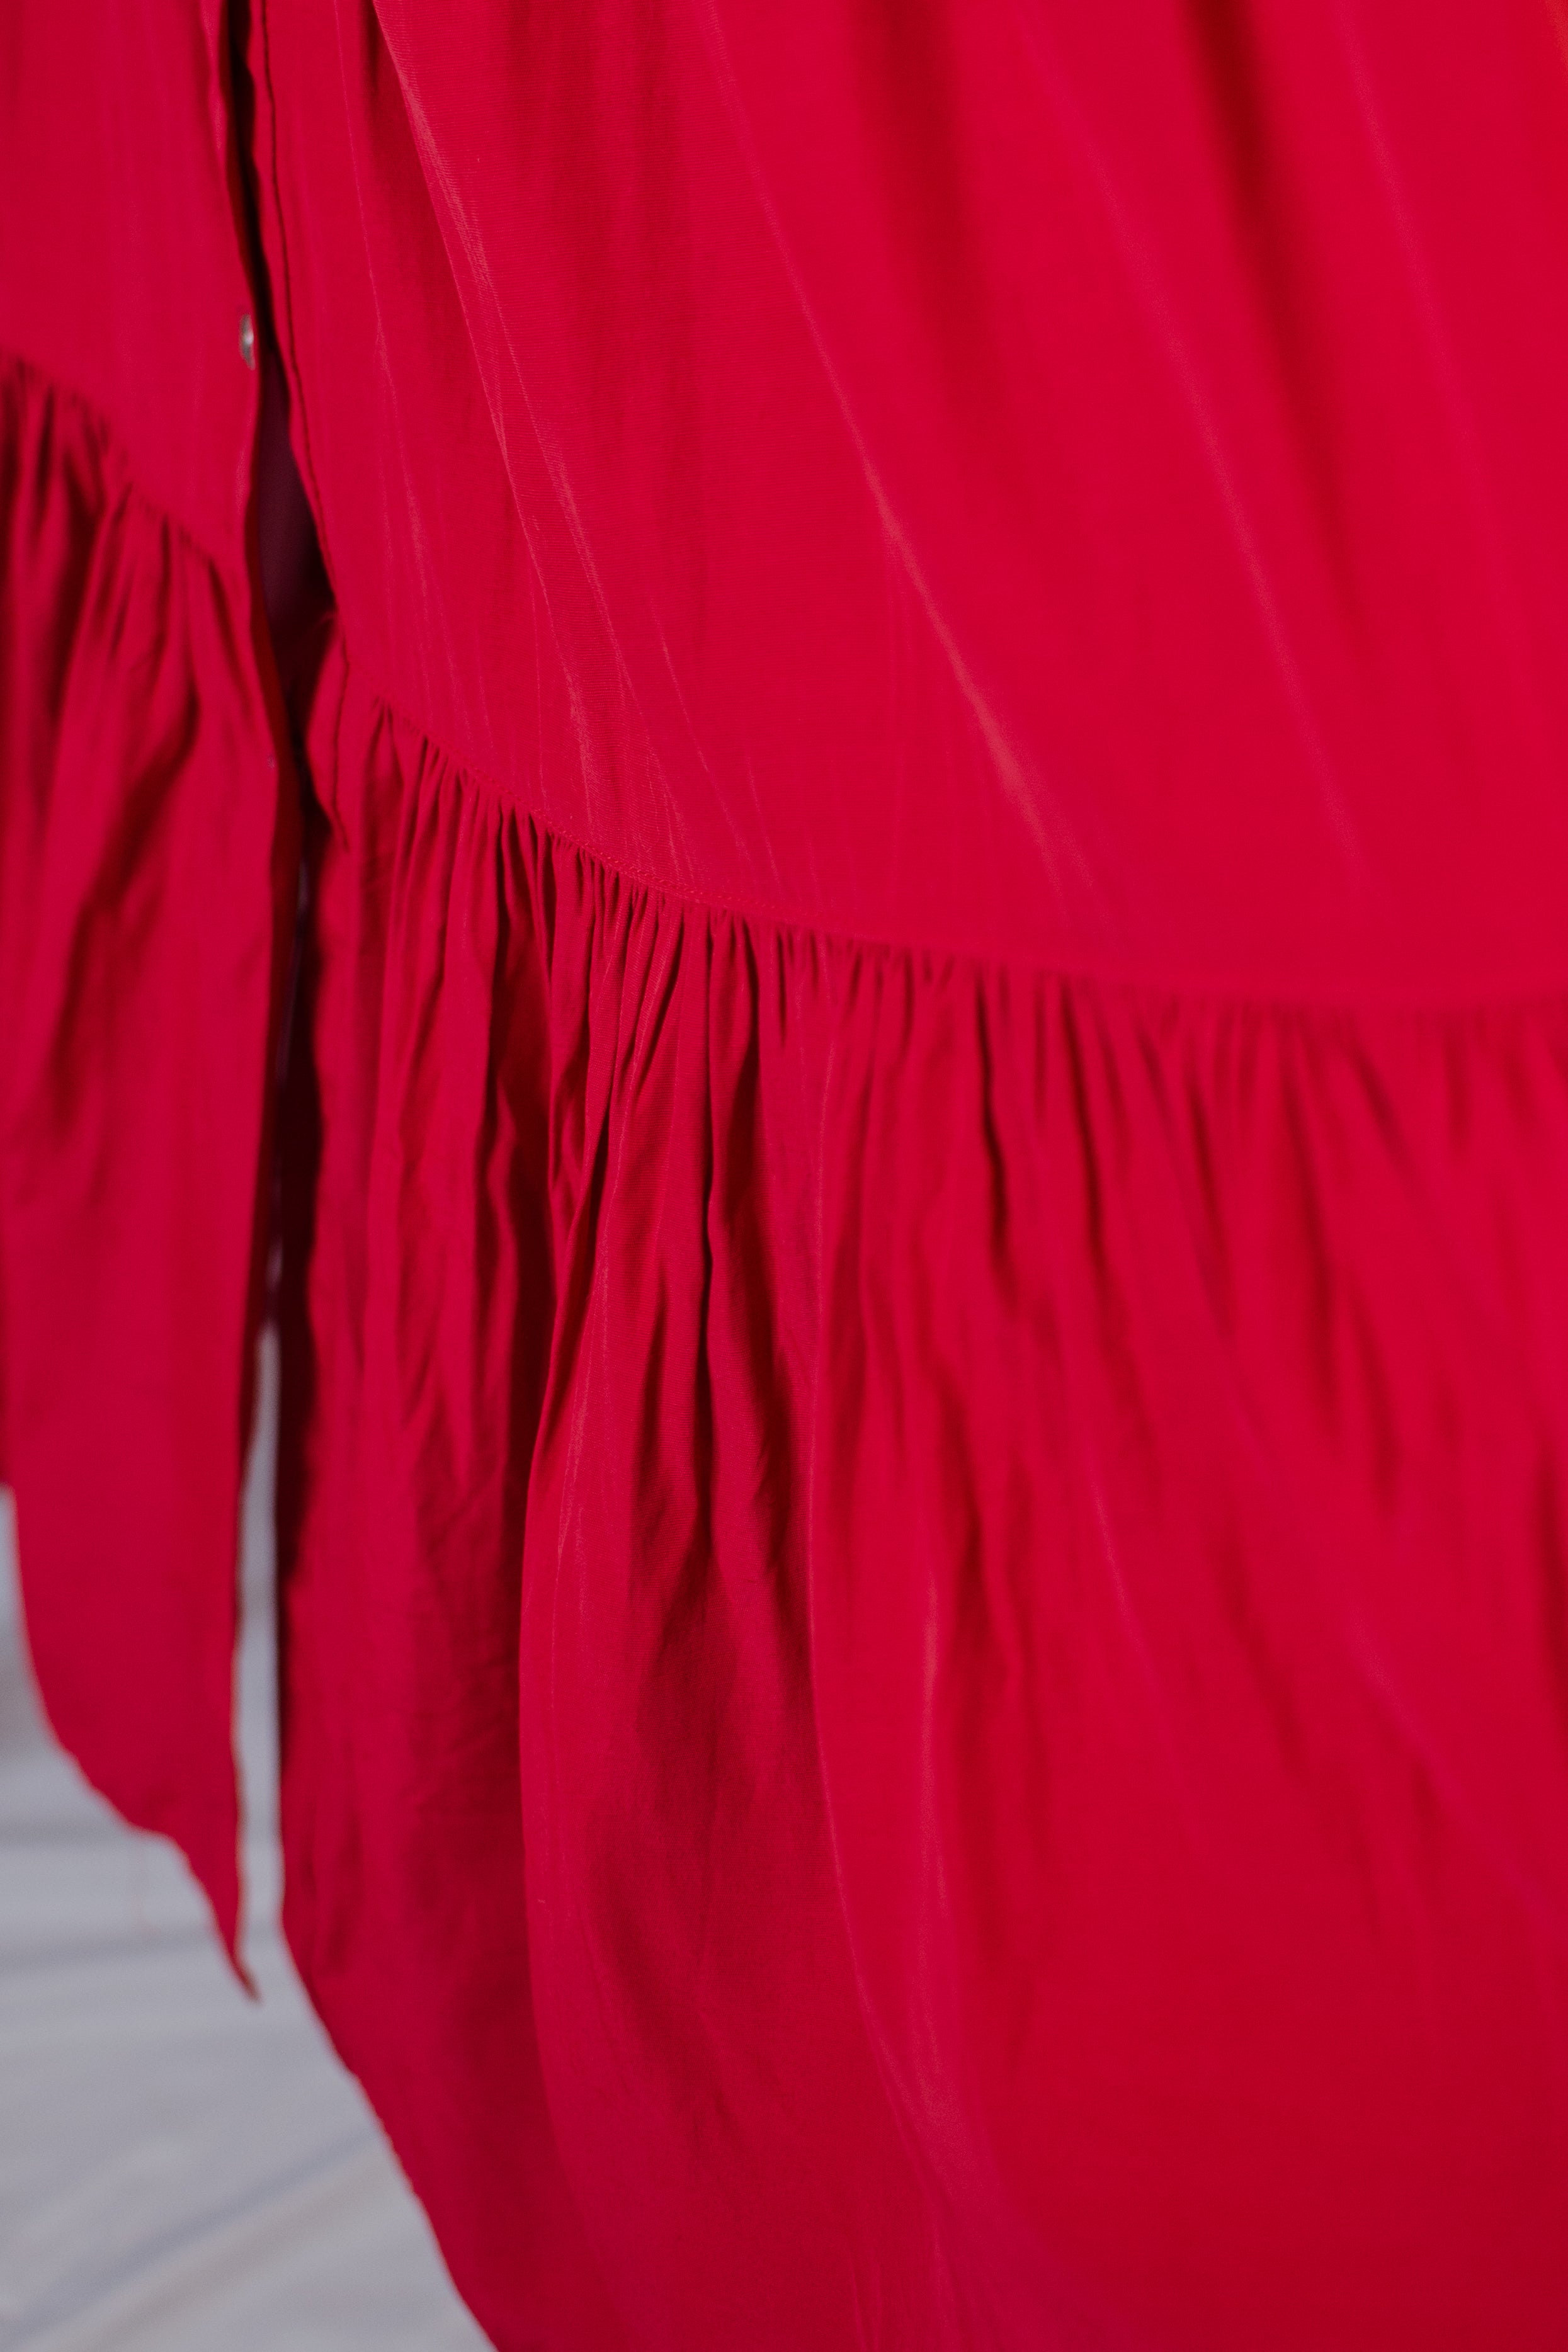 Vintage 90s Red Maxi Skirt / S-M